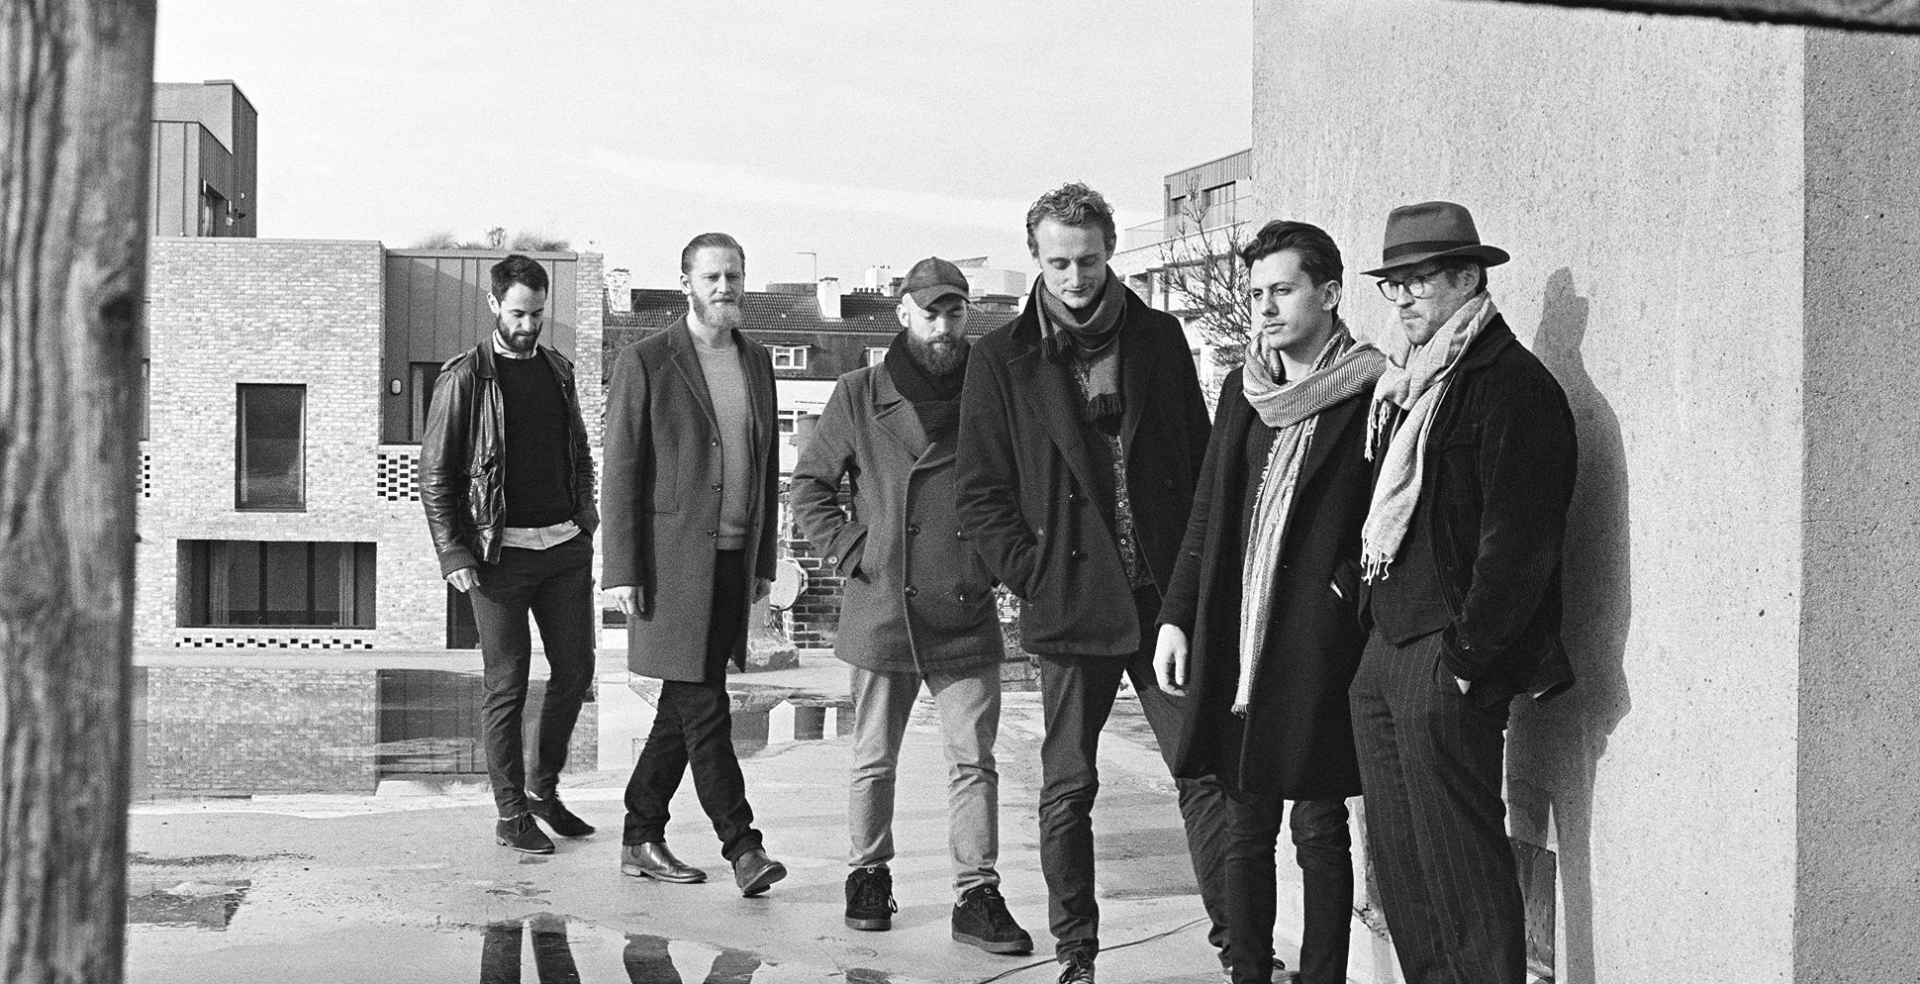 THE LONDON DJANGO COLLECTIVE